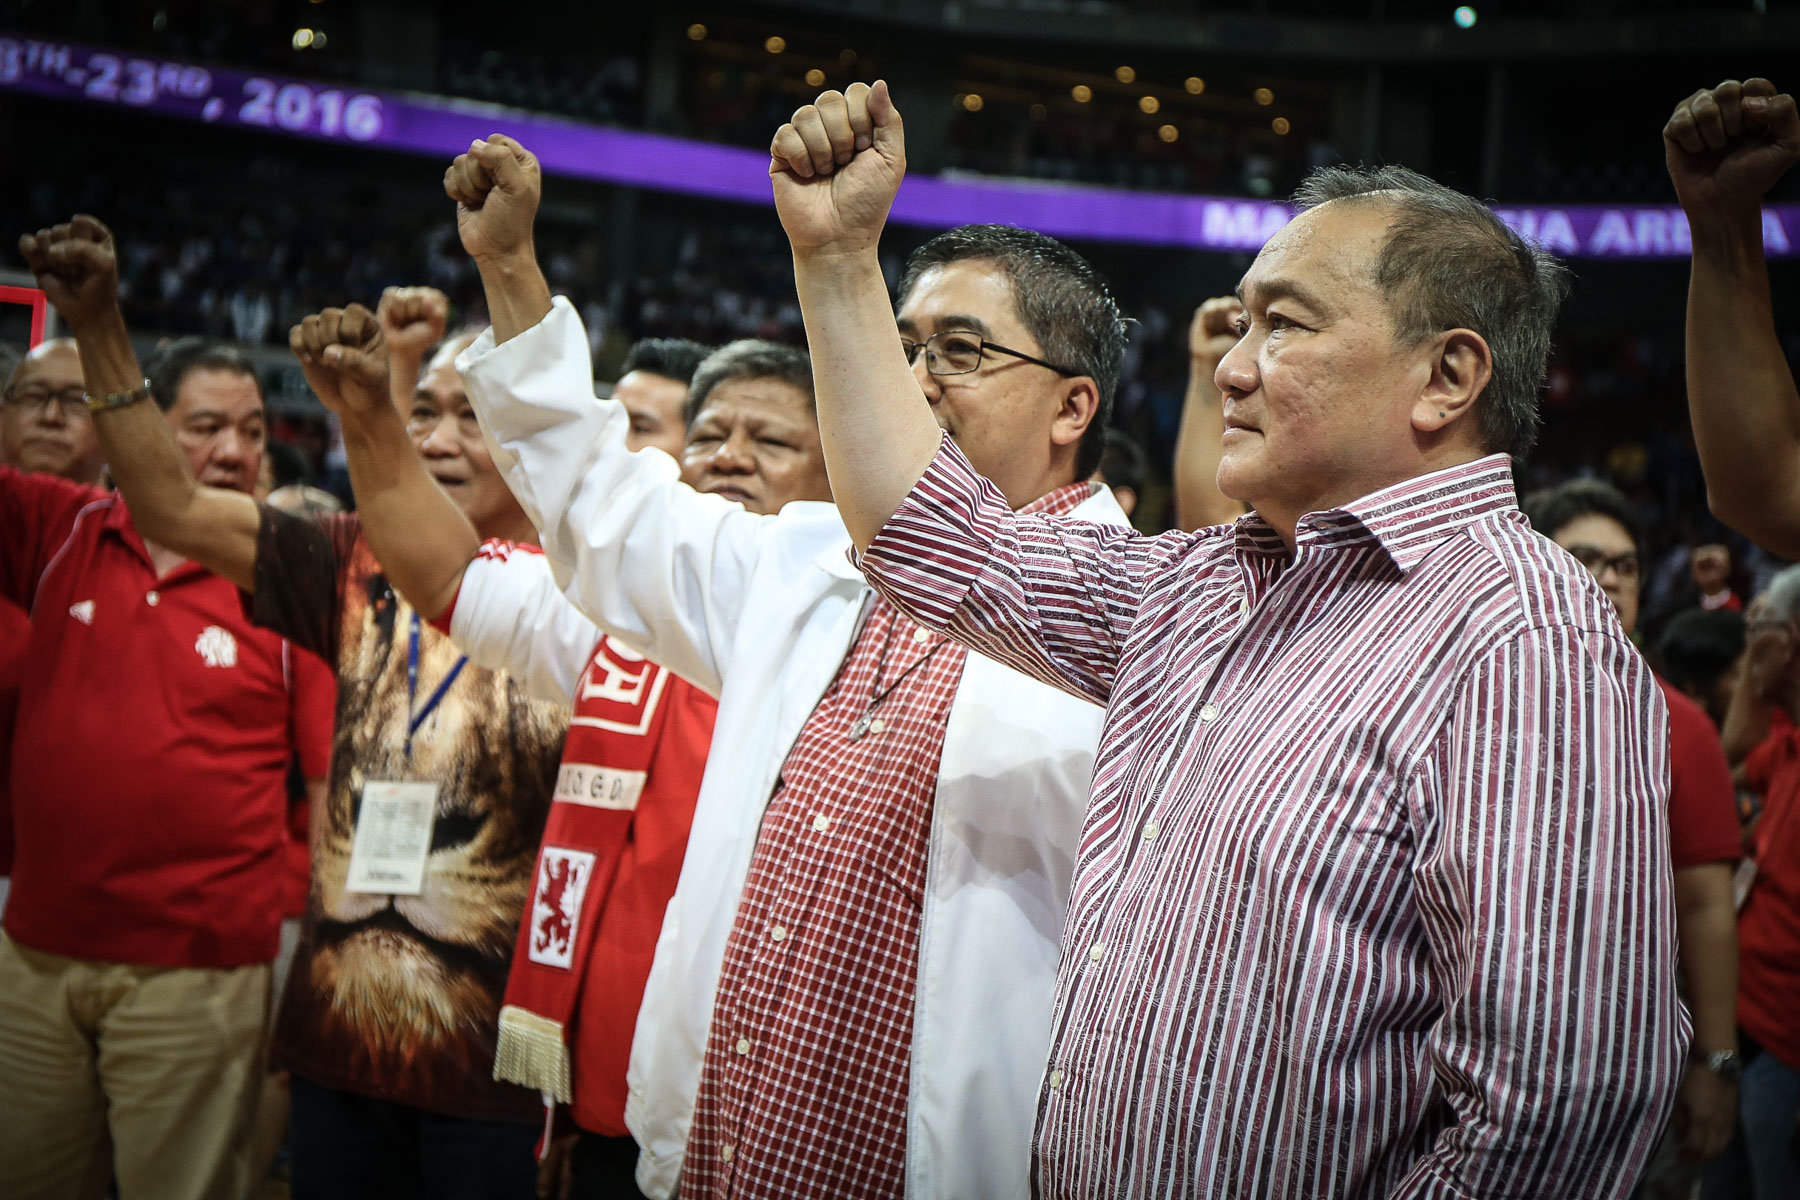 MVP. San Beda basketball patron Manny V. Pangilinan sings the hymn and celebrates with the Red Lions on the court. Photo by Josh Albelda/Rappler